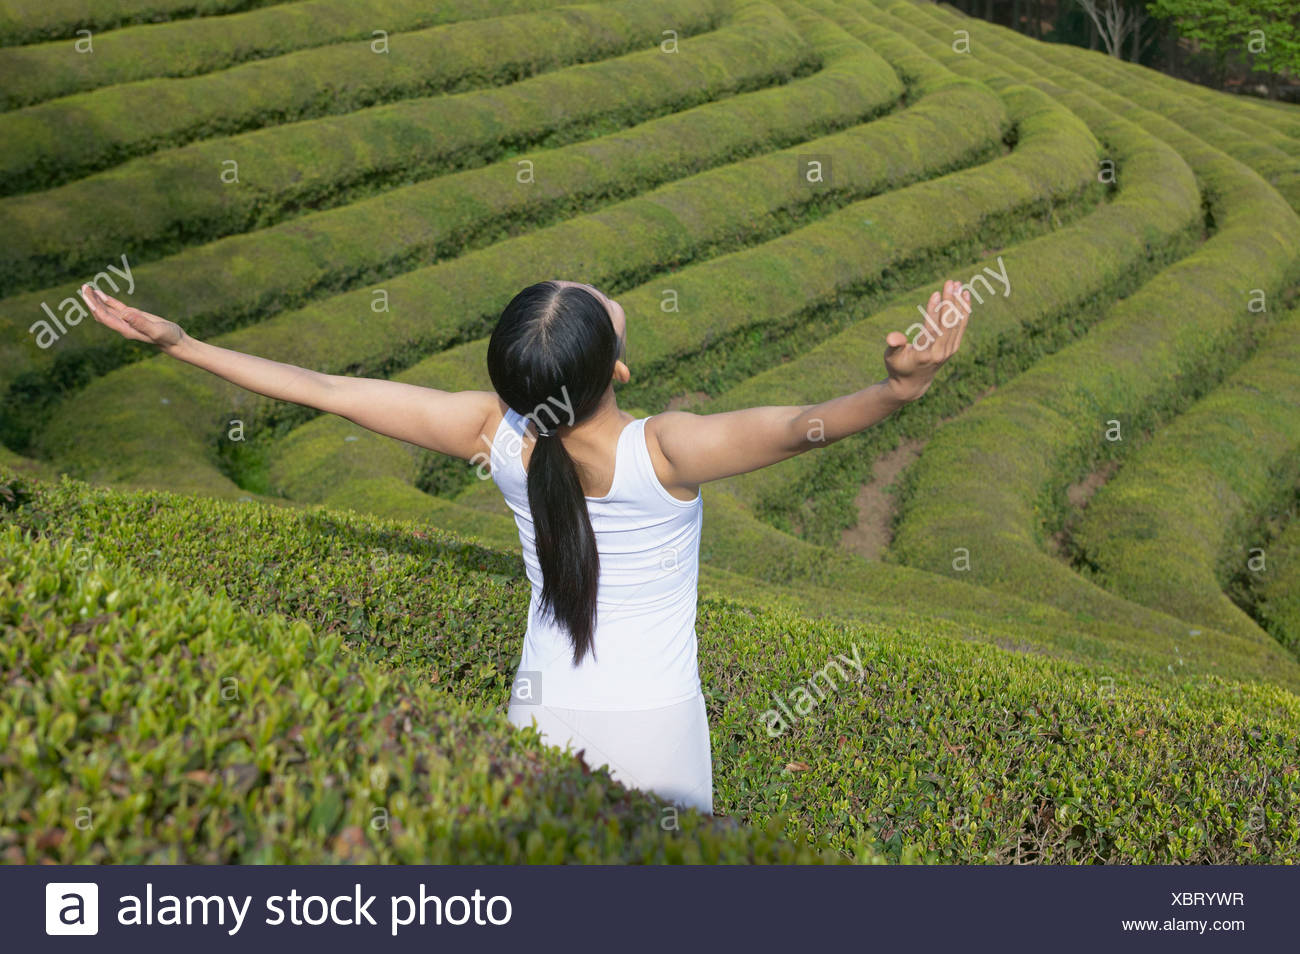 A woman opening her arms in the tea fields - Stock Image